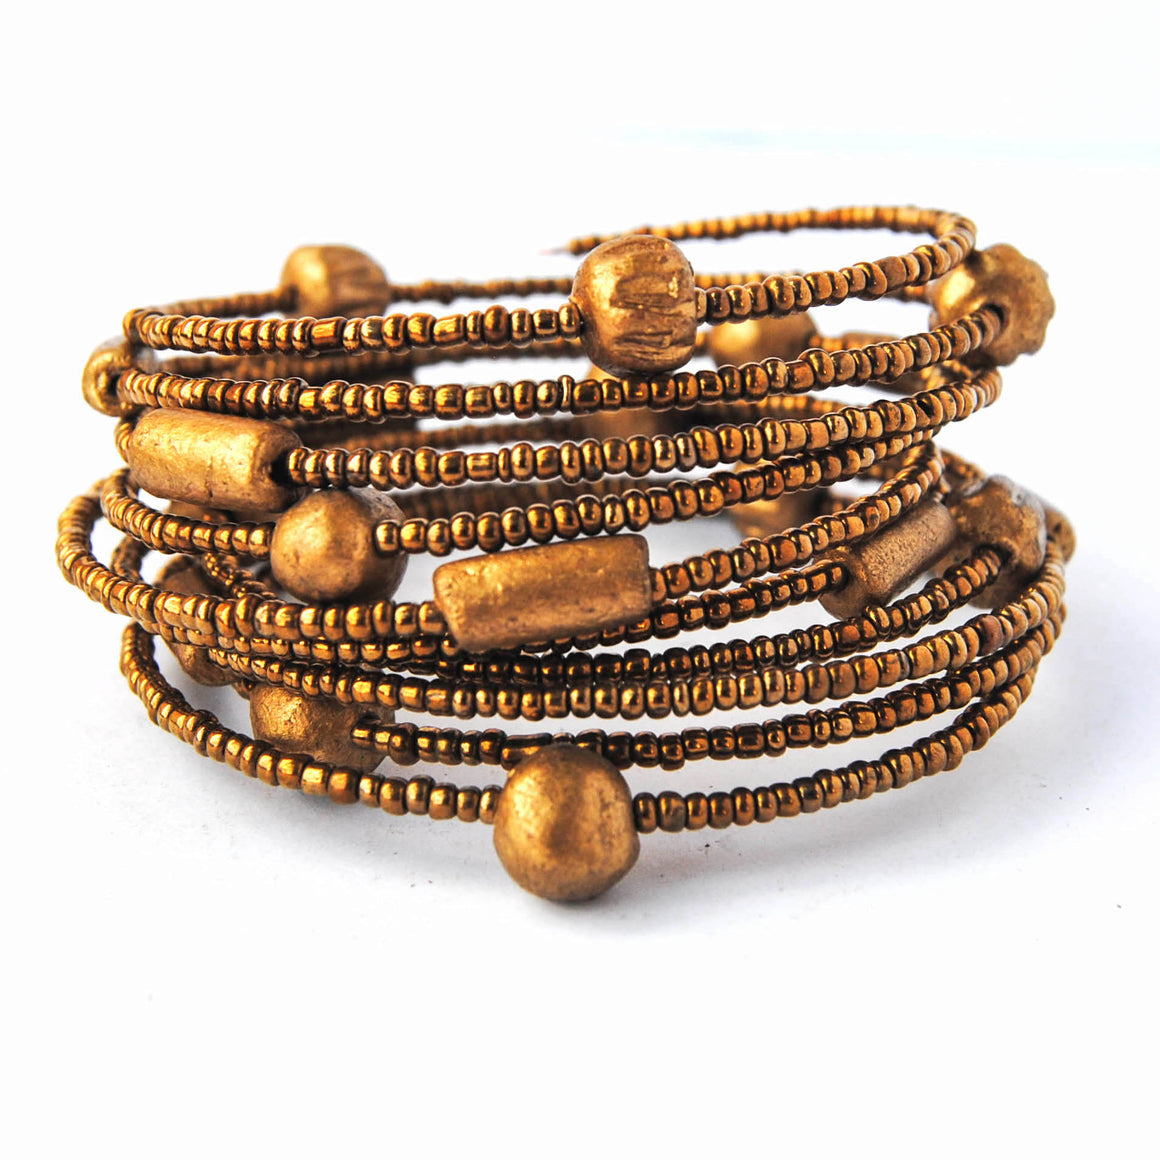 Gold Beads and Stones Coil Bracelet